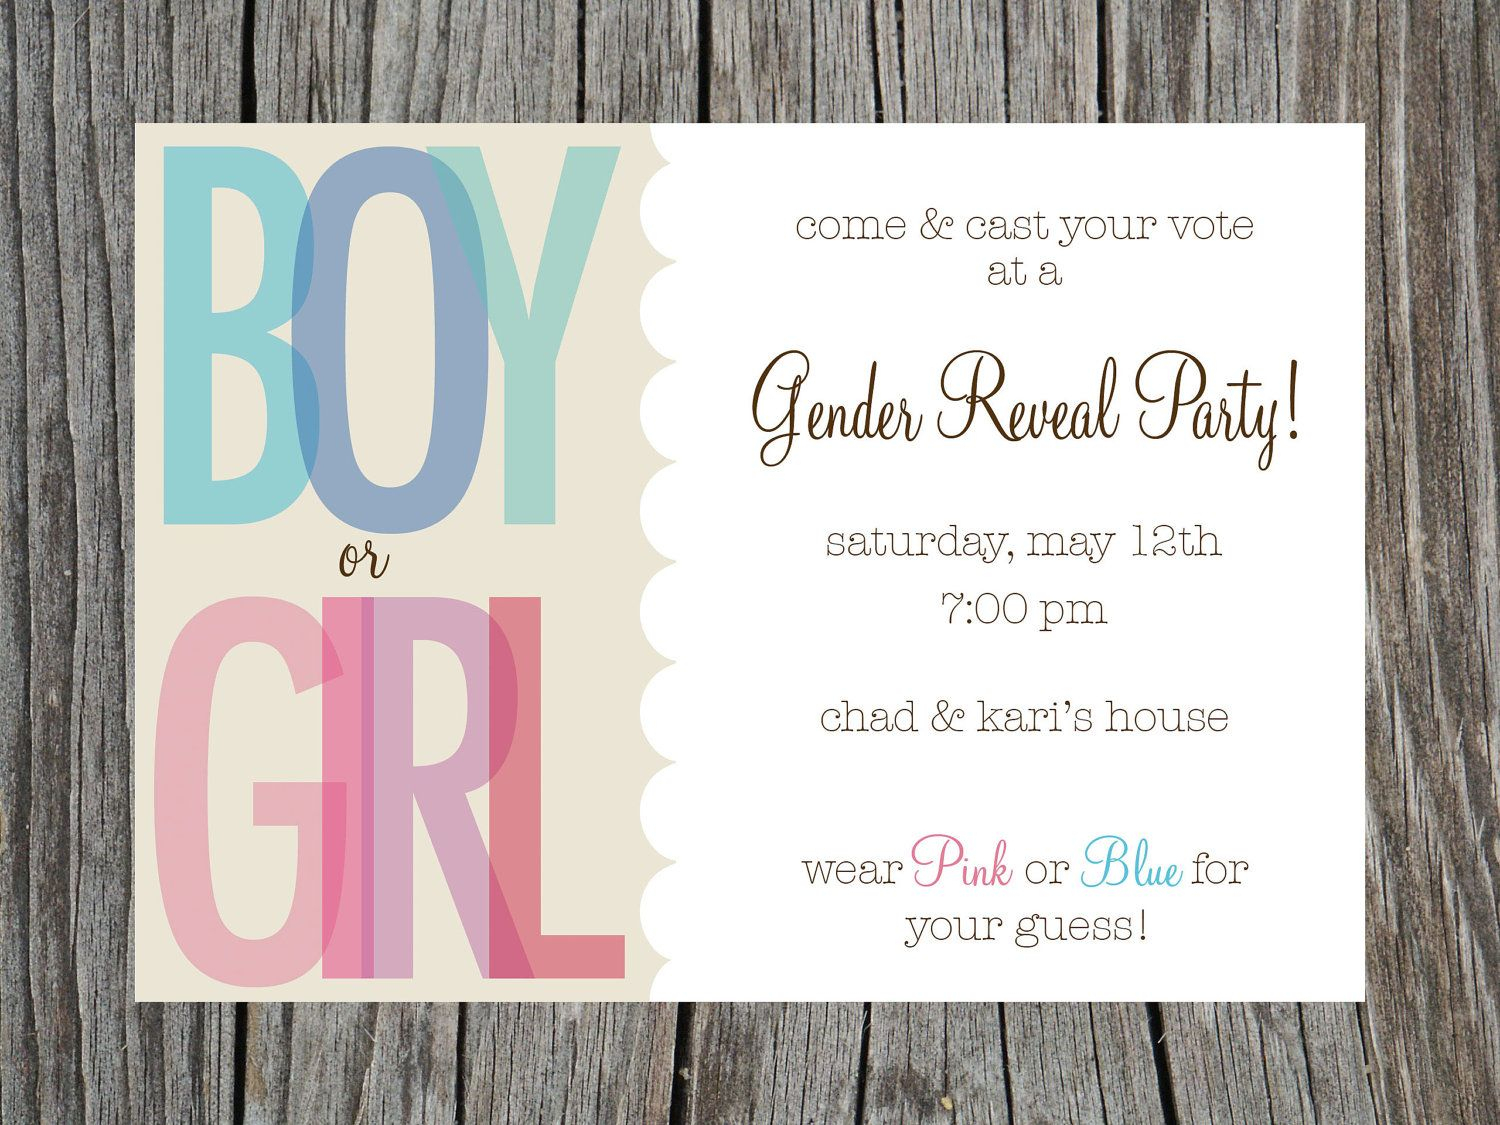 002 Gender Reveal Invitations Template Free Printable Party And The - Free Printable Gender Reveal Invitations